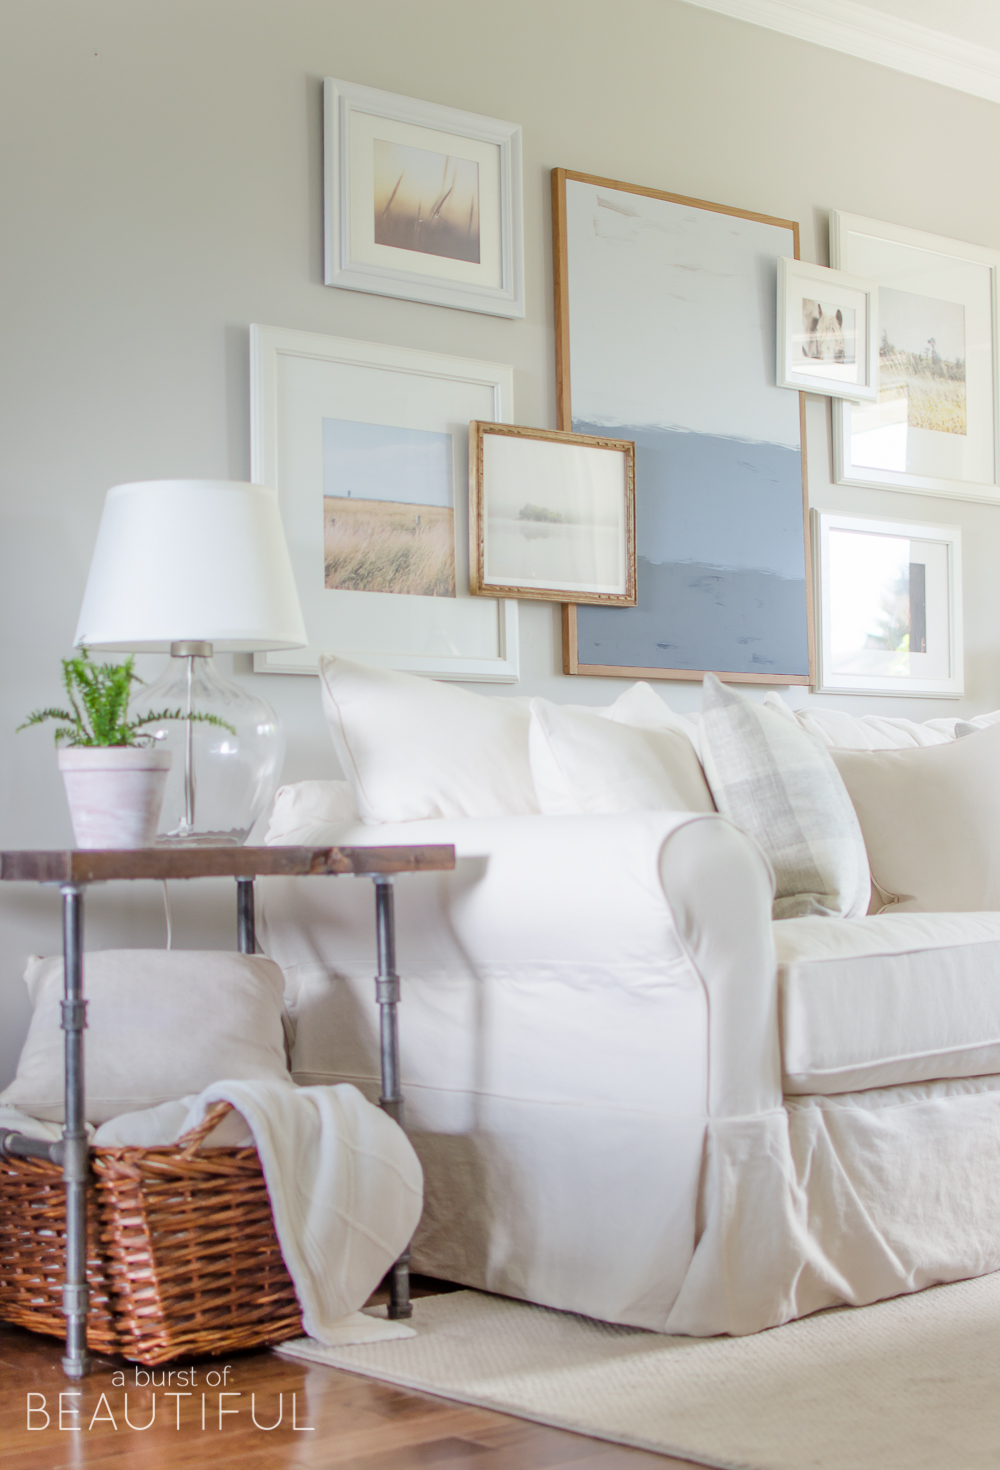 A white slipcovered sofa looks casual and relaxed in this charming farmhouse living room. Learn how to keep white slipcovered furniture clean at aburstofbeautiful.com.